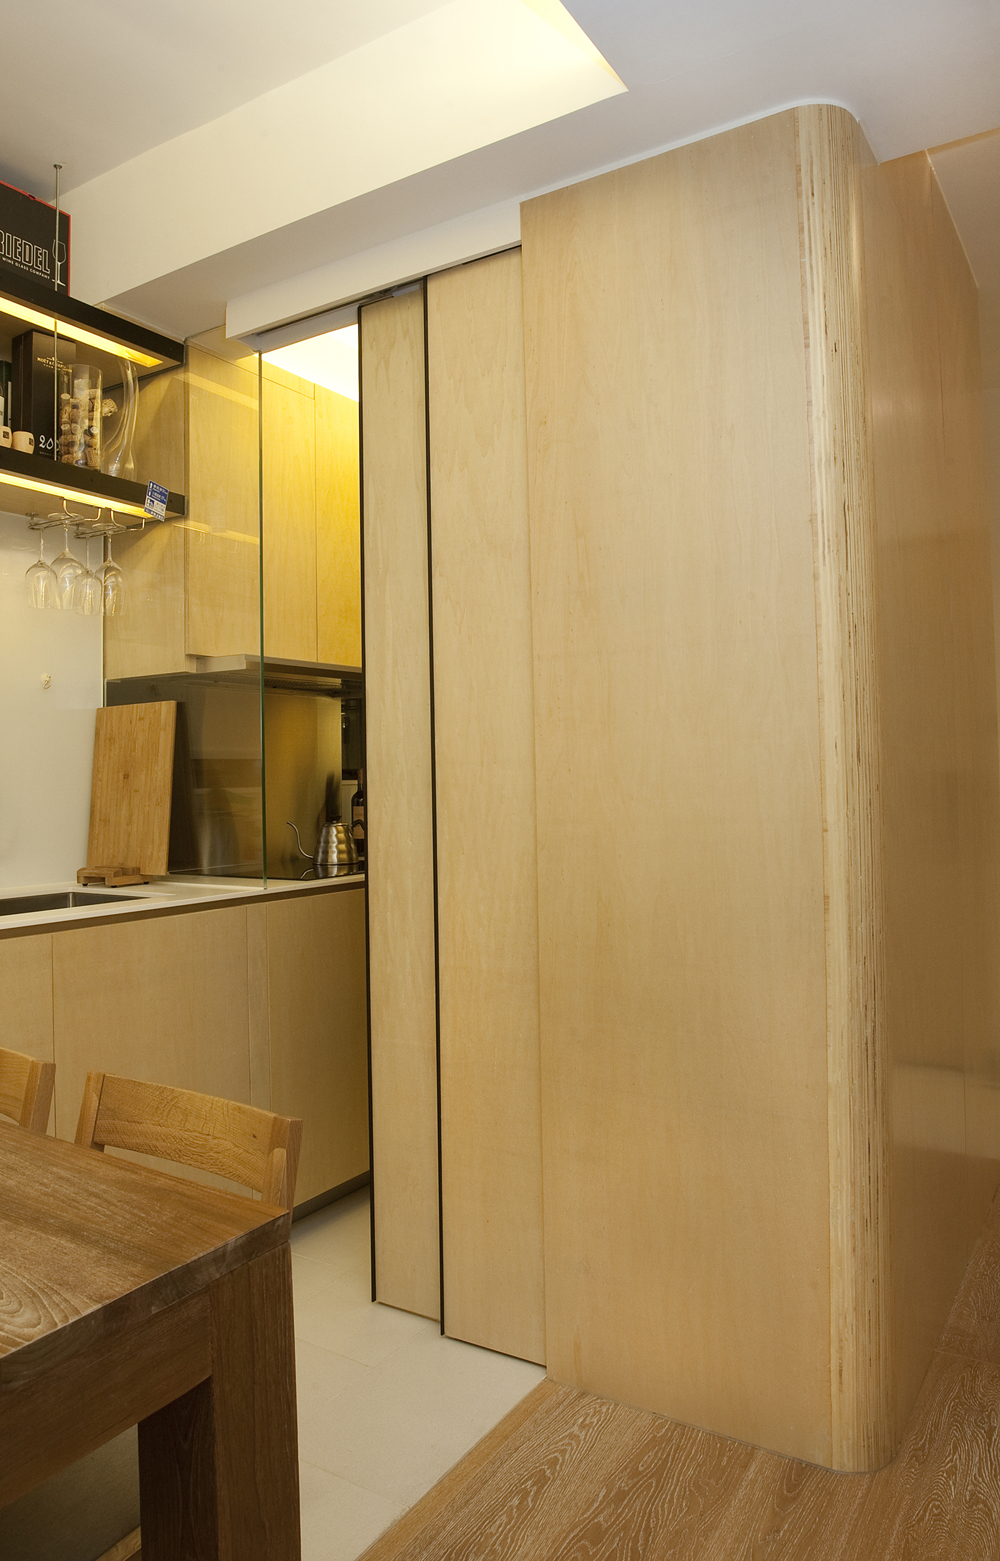 Inside the shape shifting 452 square foot hong kong flat dubbed the 39 city transformer 39 post - Kitchen sliding door price ...